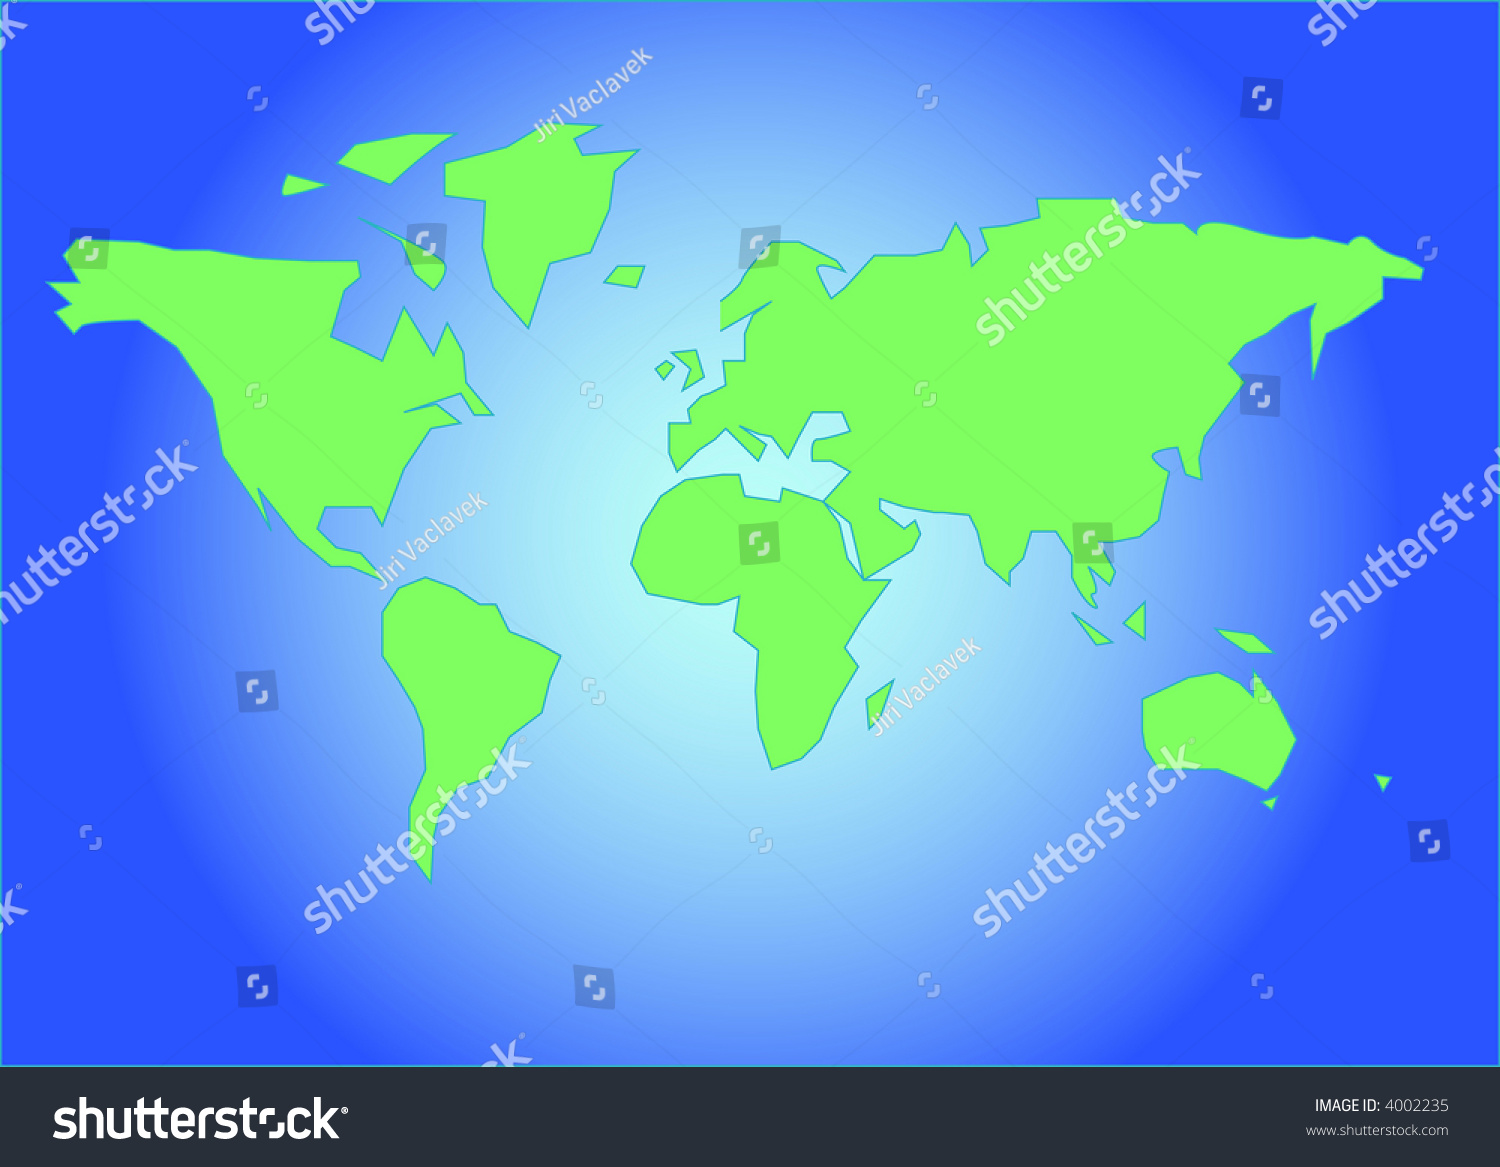 Easy map world stock vector hd royalty free 4002235 shutterstock easy map of world gumiabroncs Images